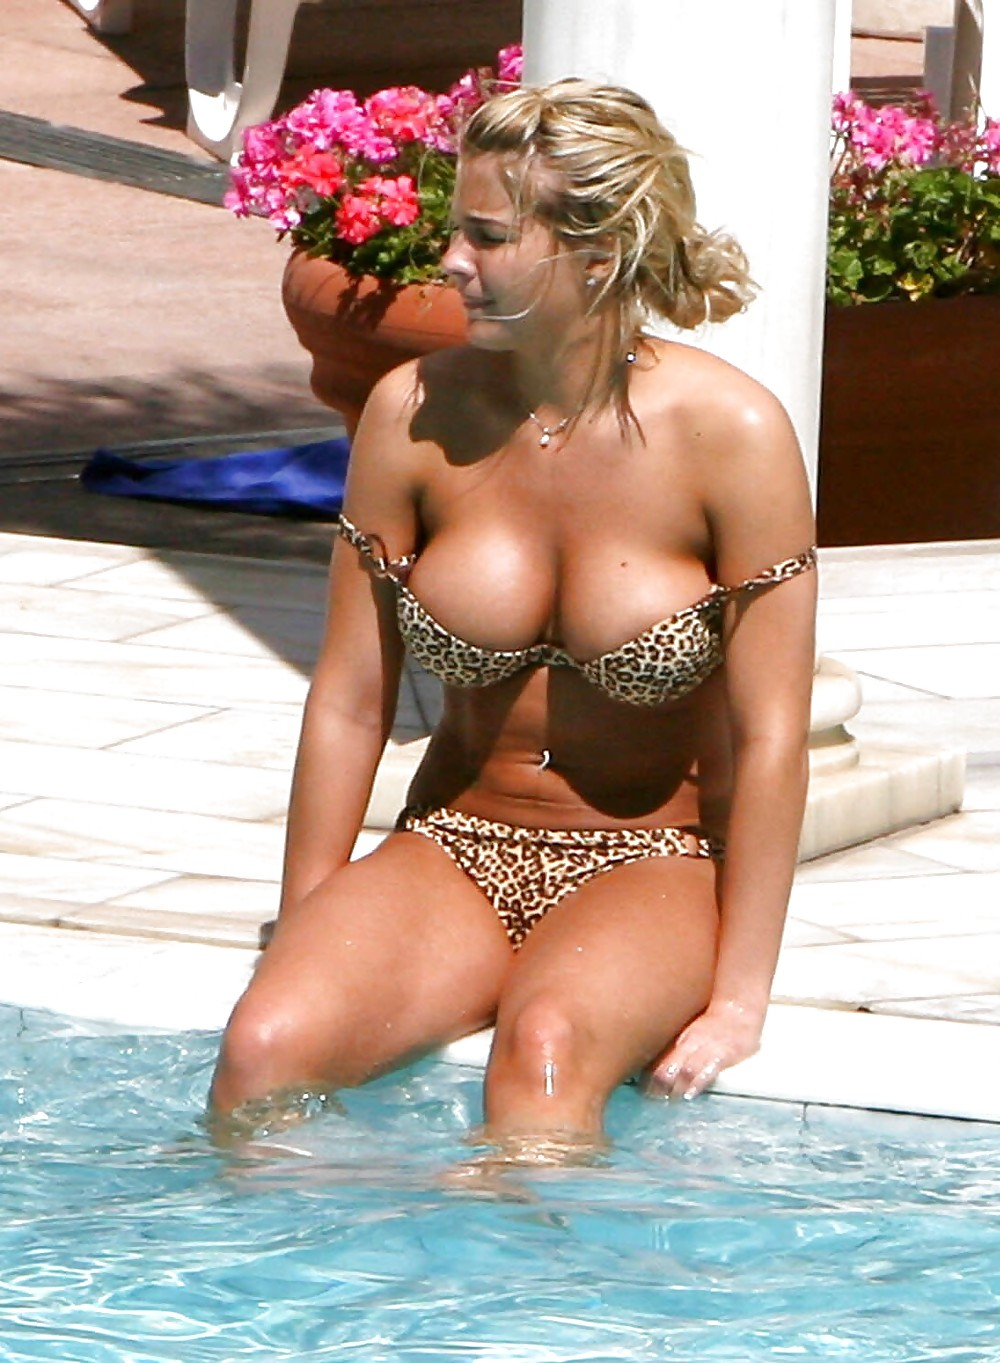 Fuck Gemma Atkinson nudes (32 foto and video), Pussy, Sideboobs, Selfie, braless 2015